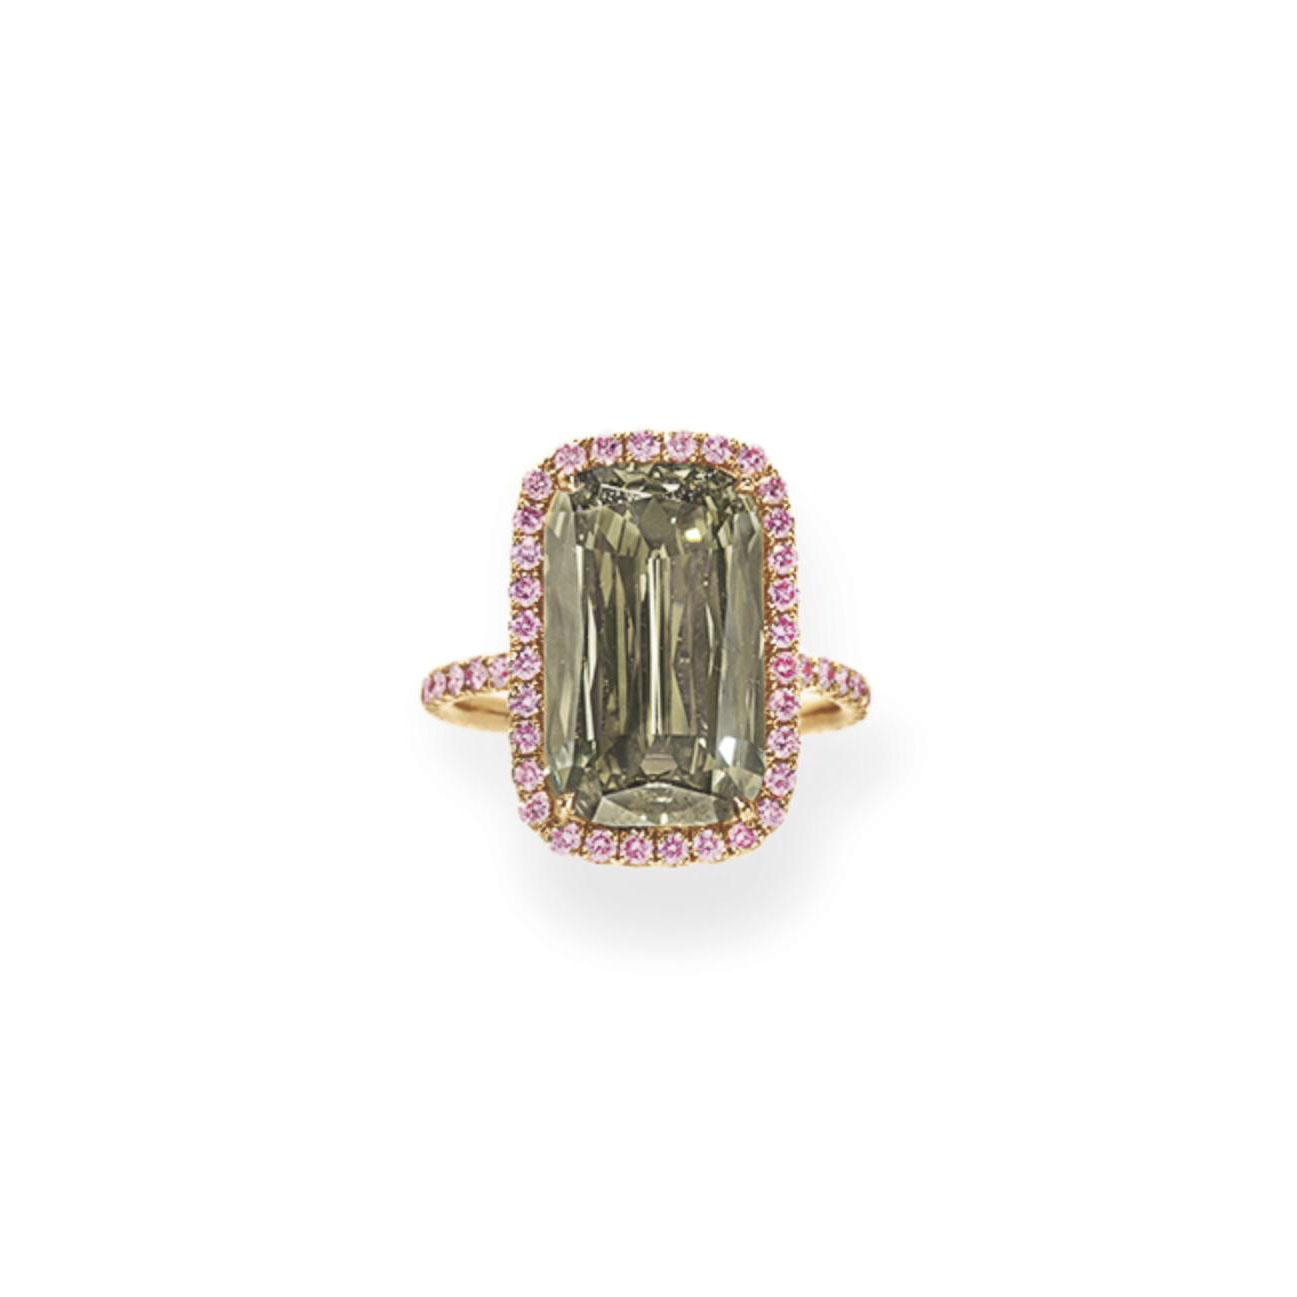 A COLORED DIAMOND RING, BY WILLIAM GOLDBERG